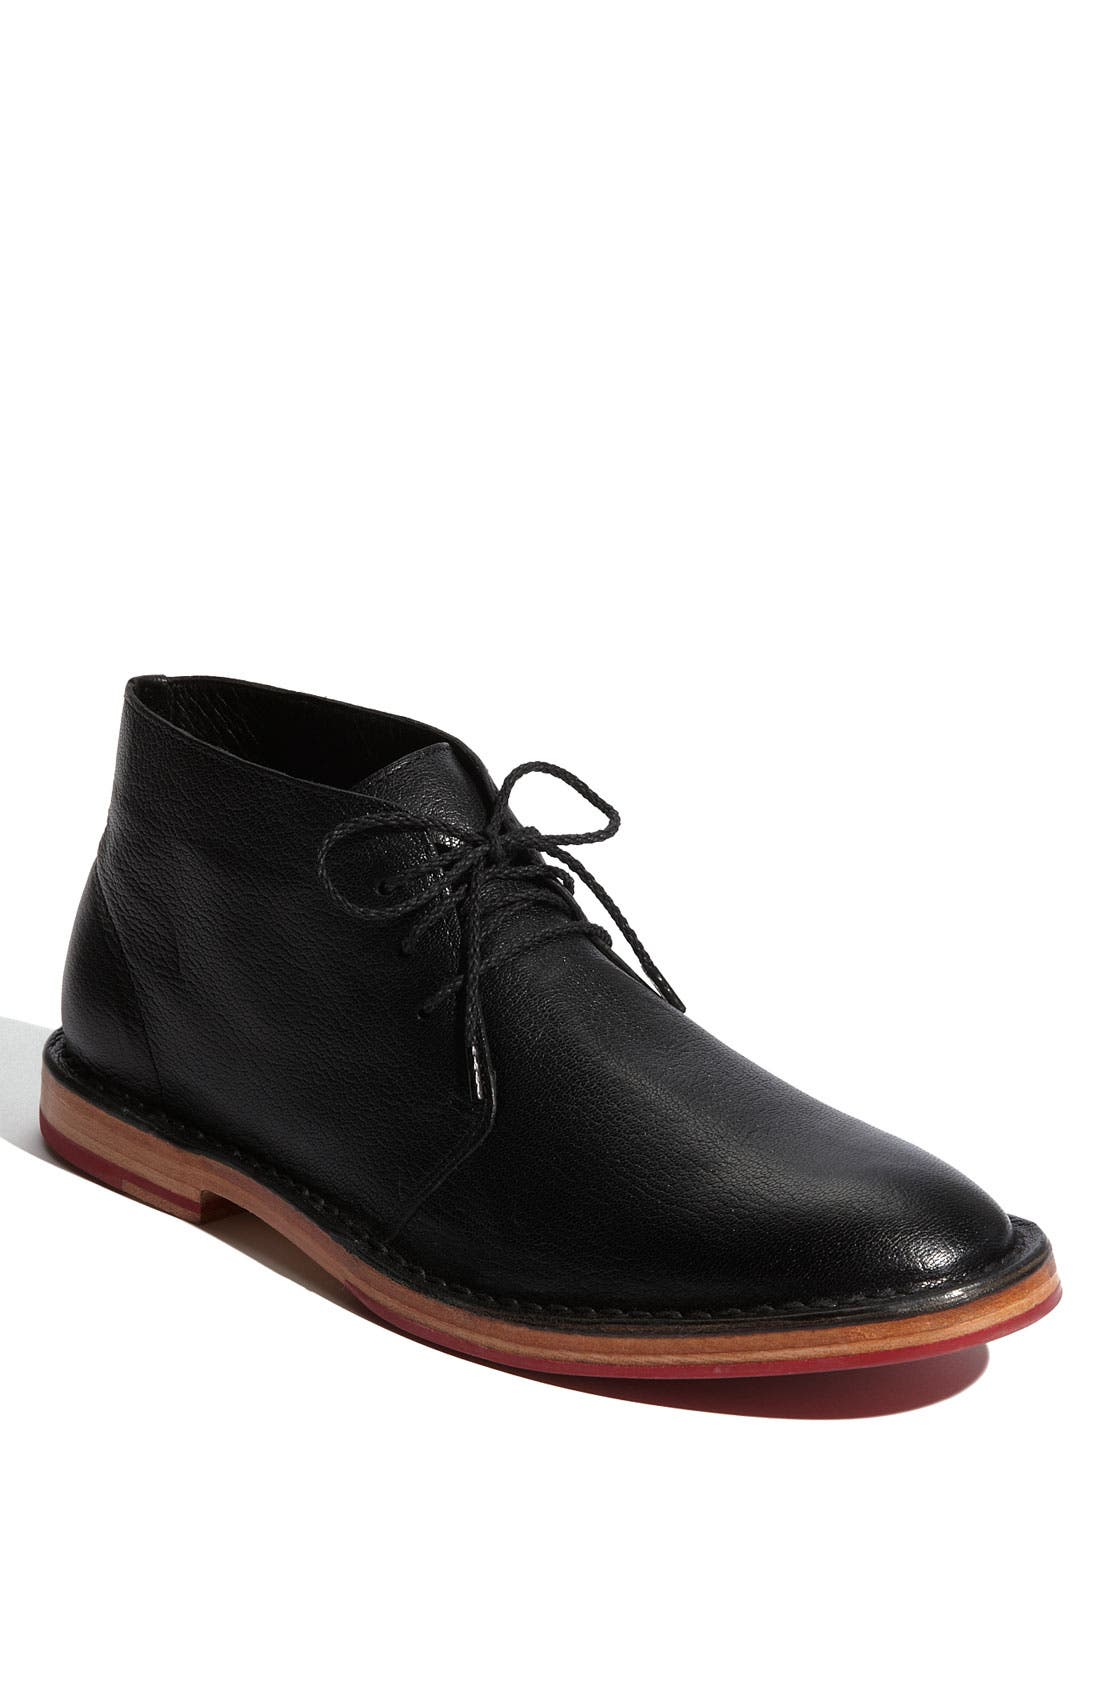 Alternate Image 1 Selected - Cole Haan 'Paul' Chukka Boot